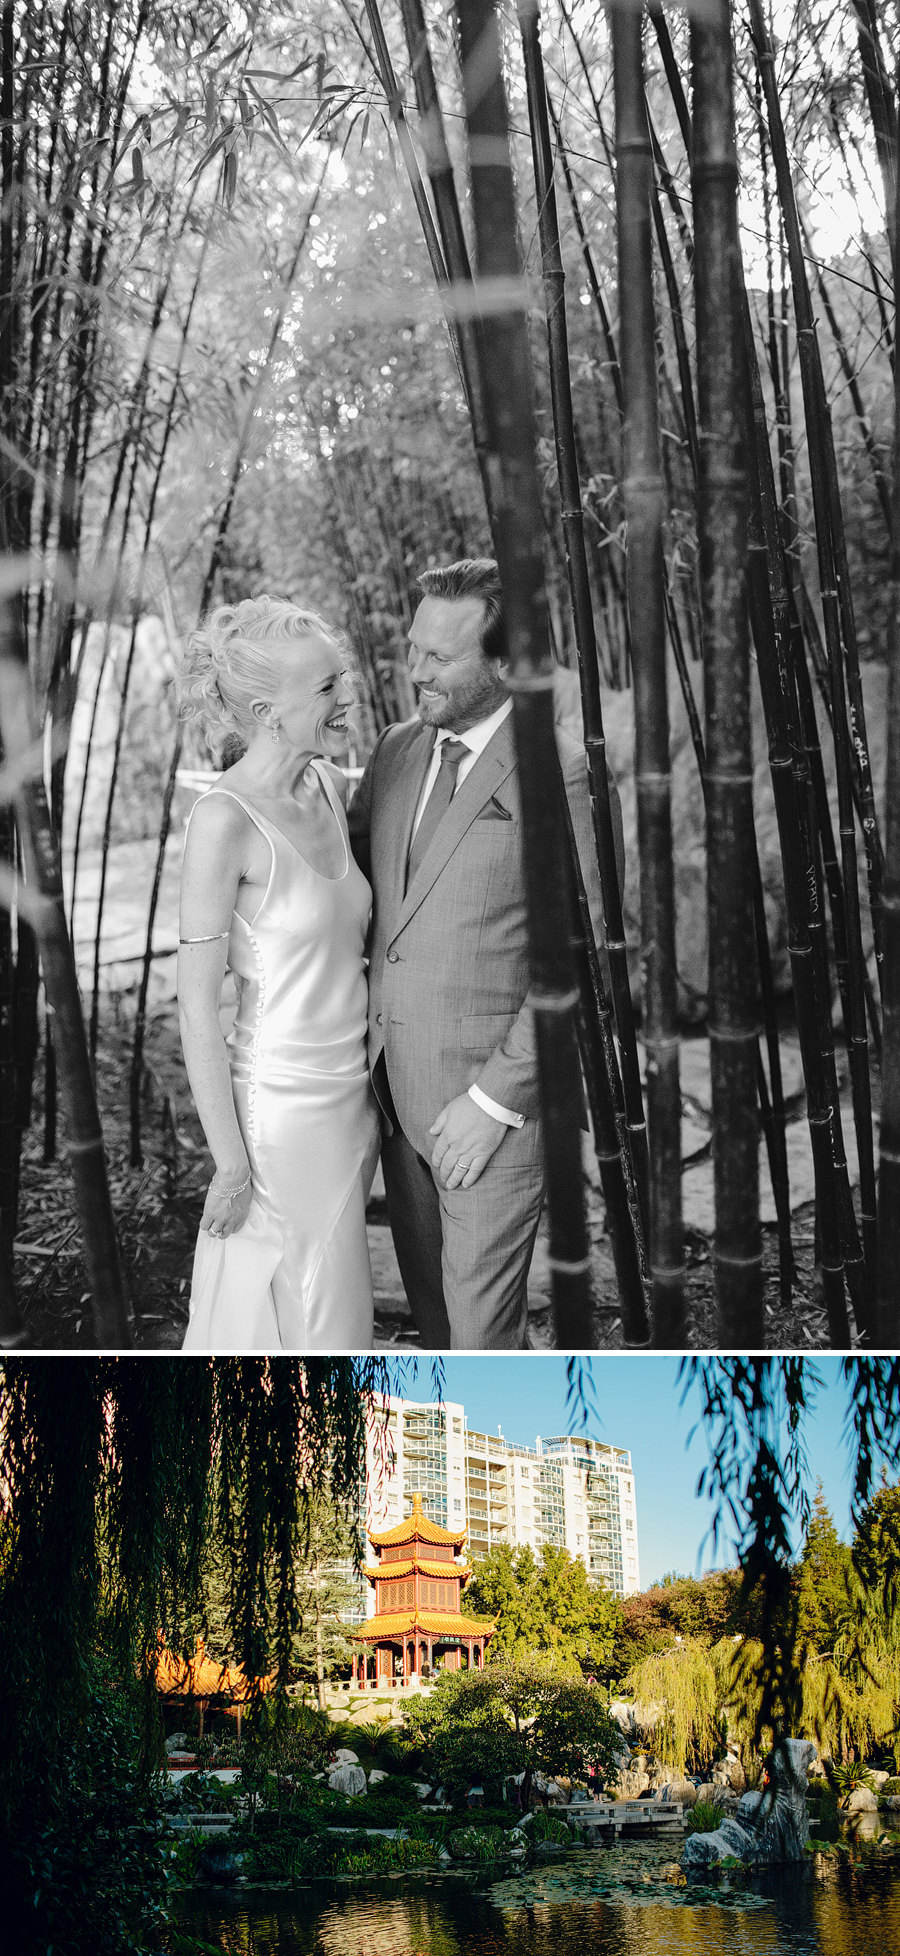 Candid Wedding Photographers: Portraits